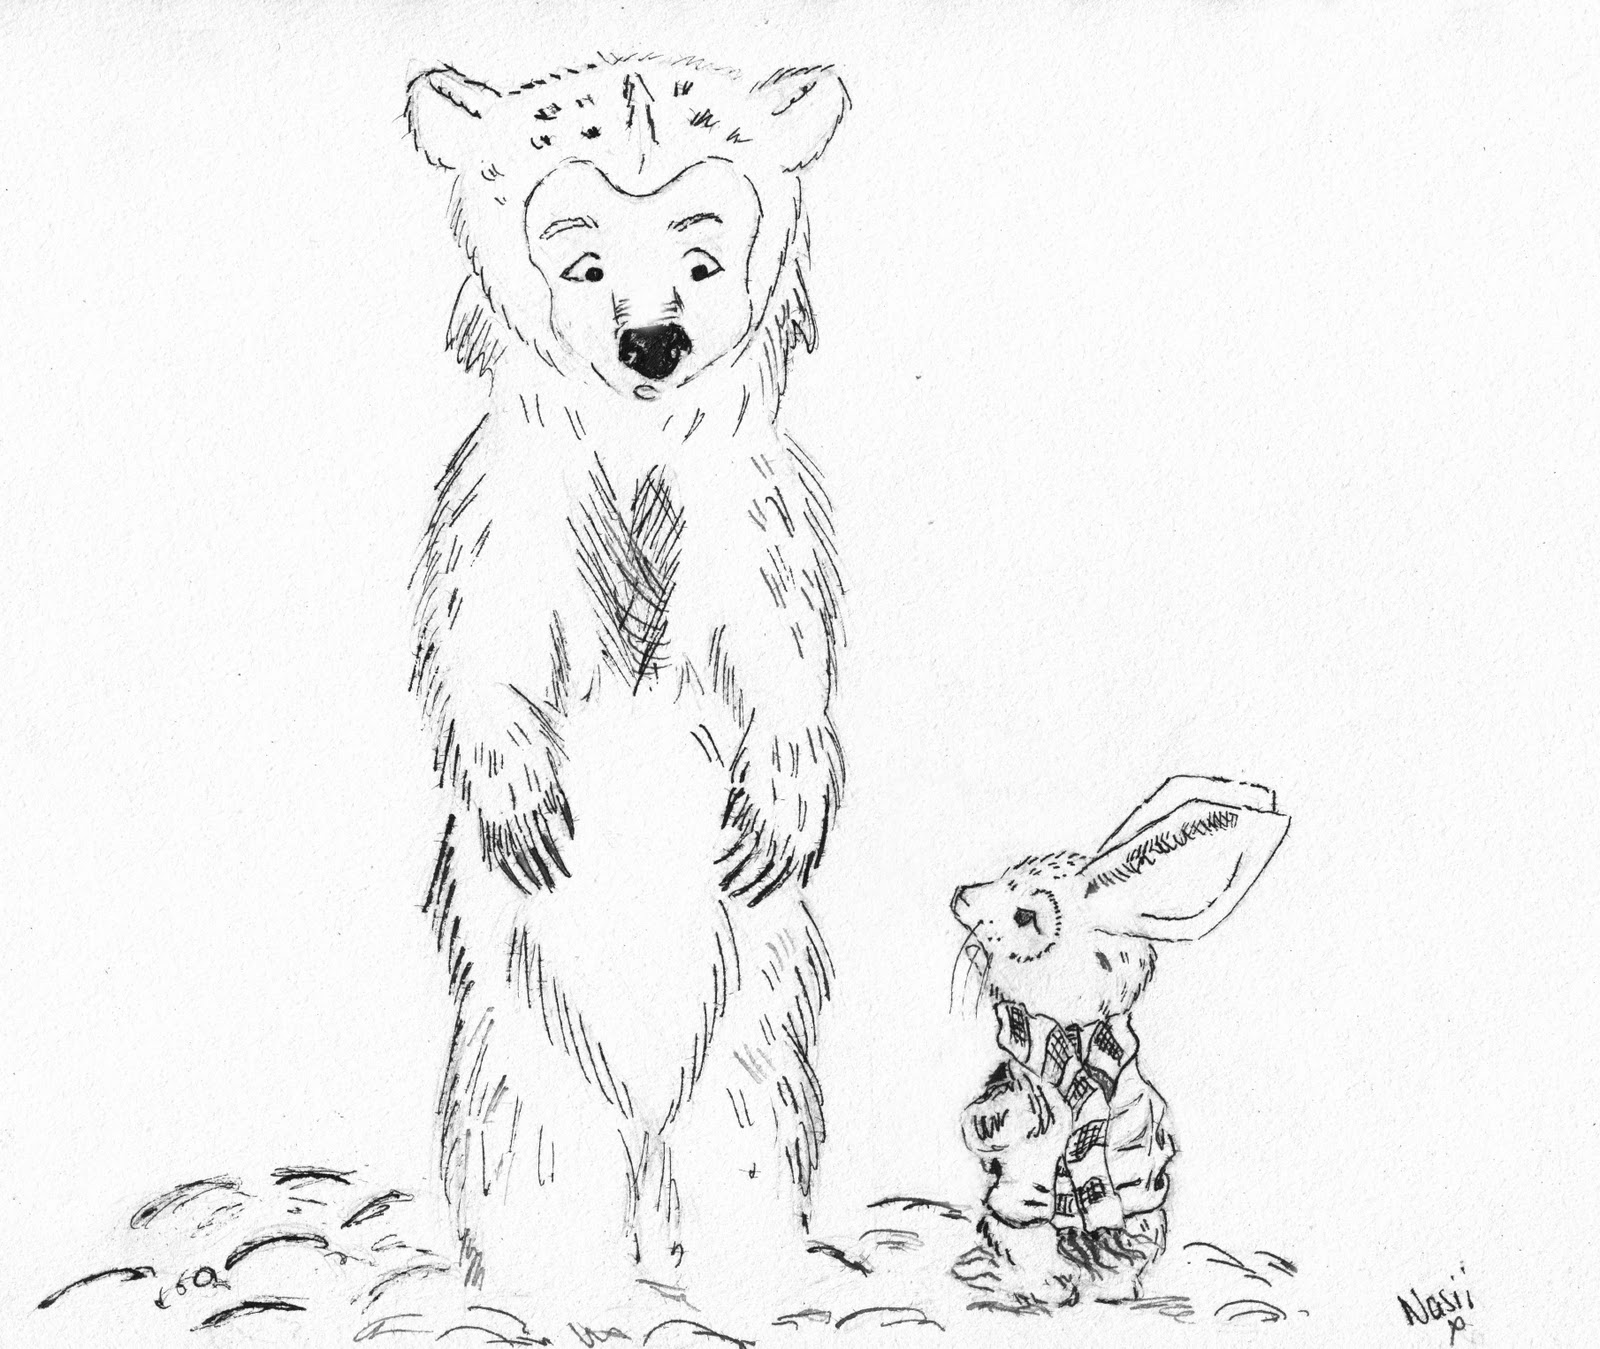 Itching Illustrator: The Bear and The Bunny ;)